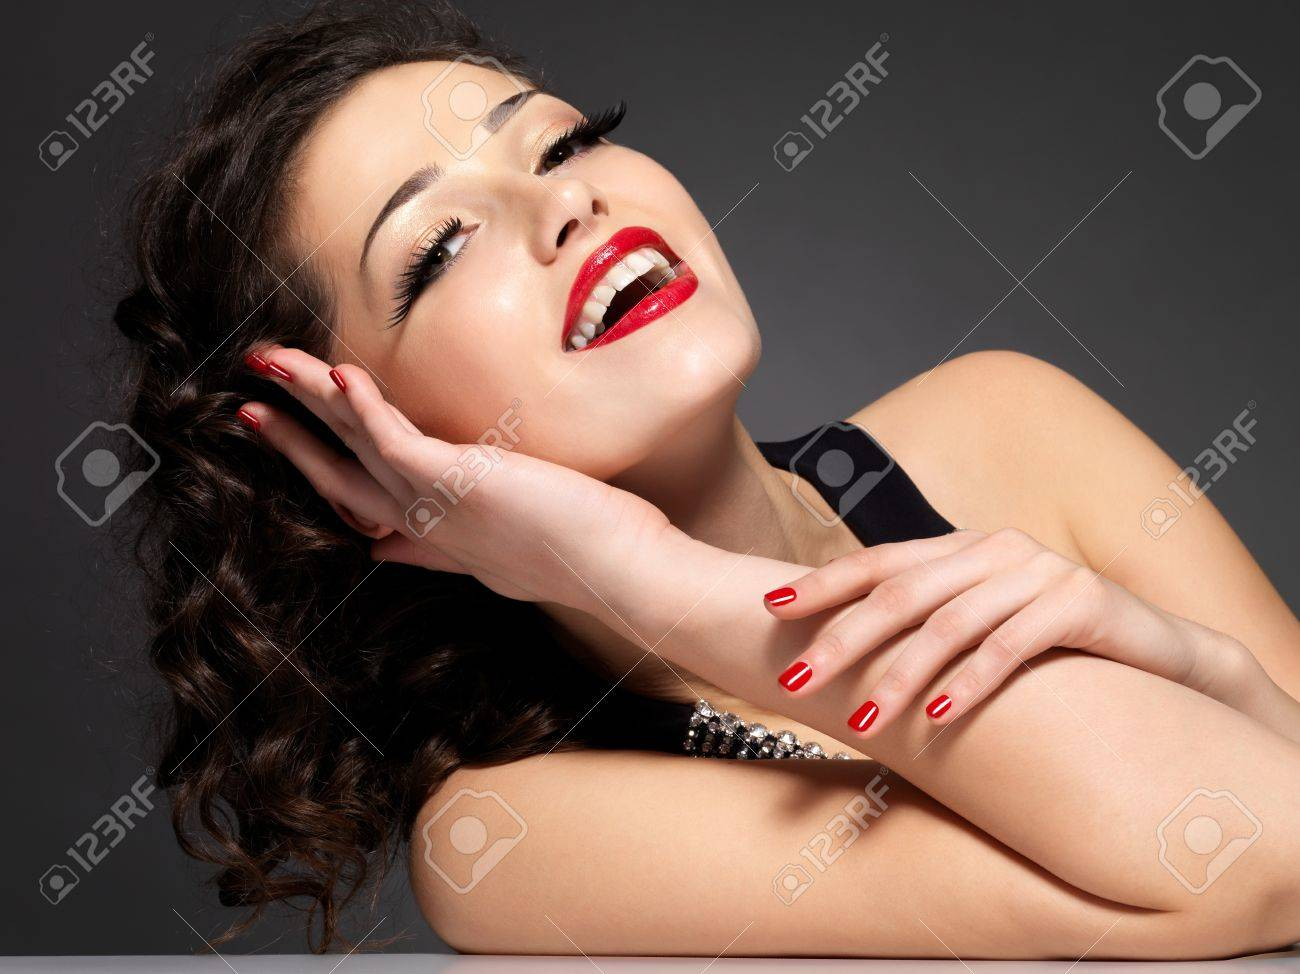 Young pretty woman with red manicure and  lips.  Fashion model with bright positive emotions Stock Photo - 16858855